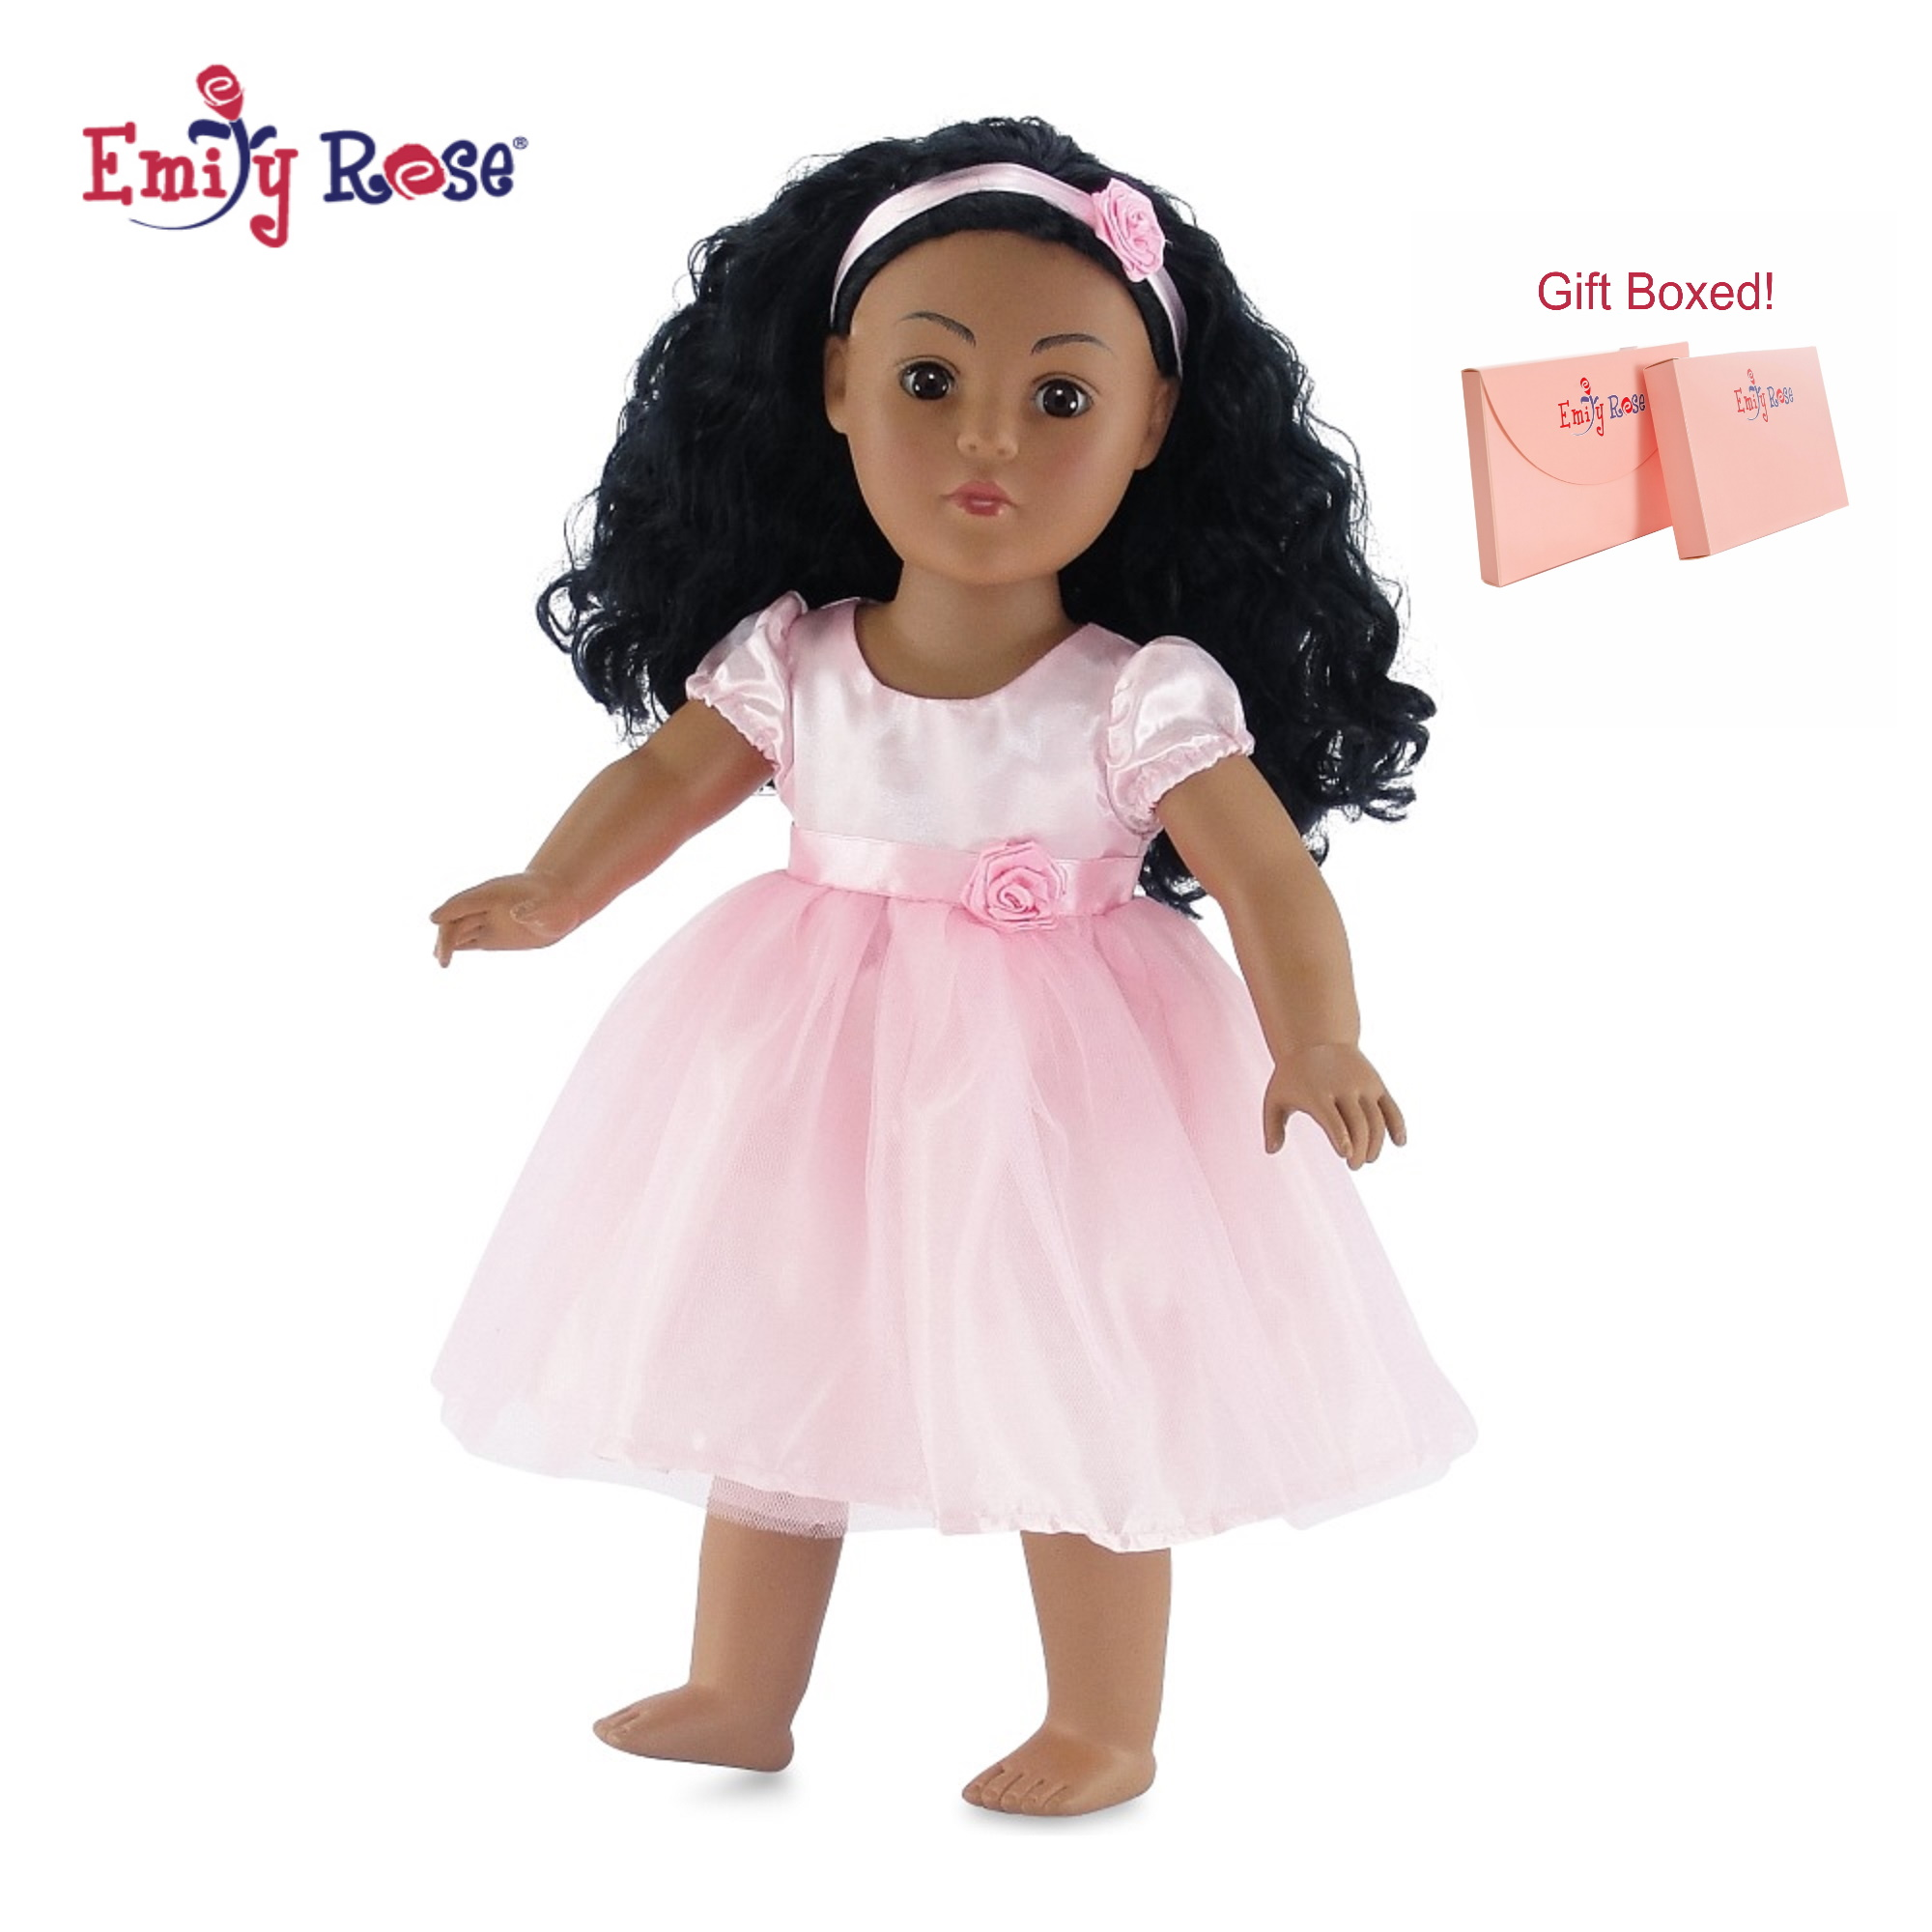 Doll Clothes Tulle Skirt fits 18 Inch American Girl Dolls